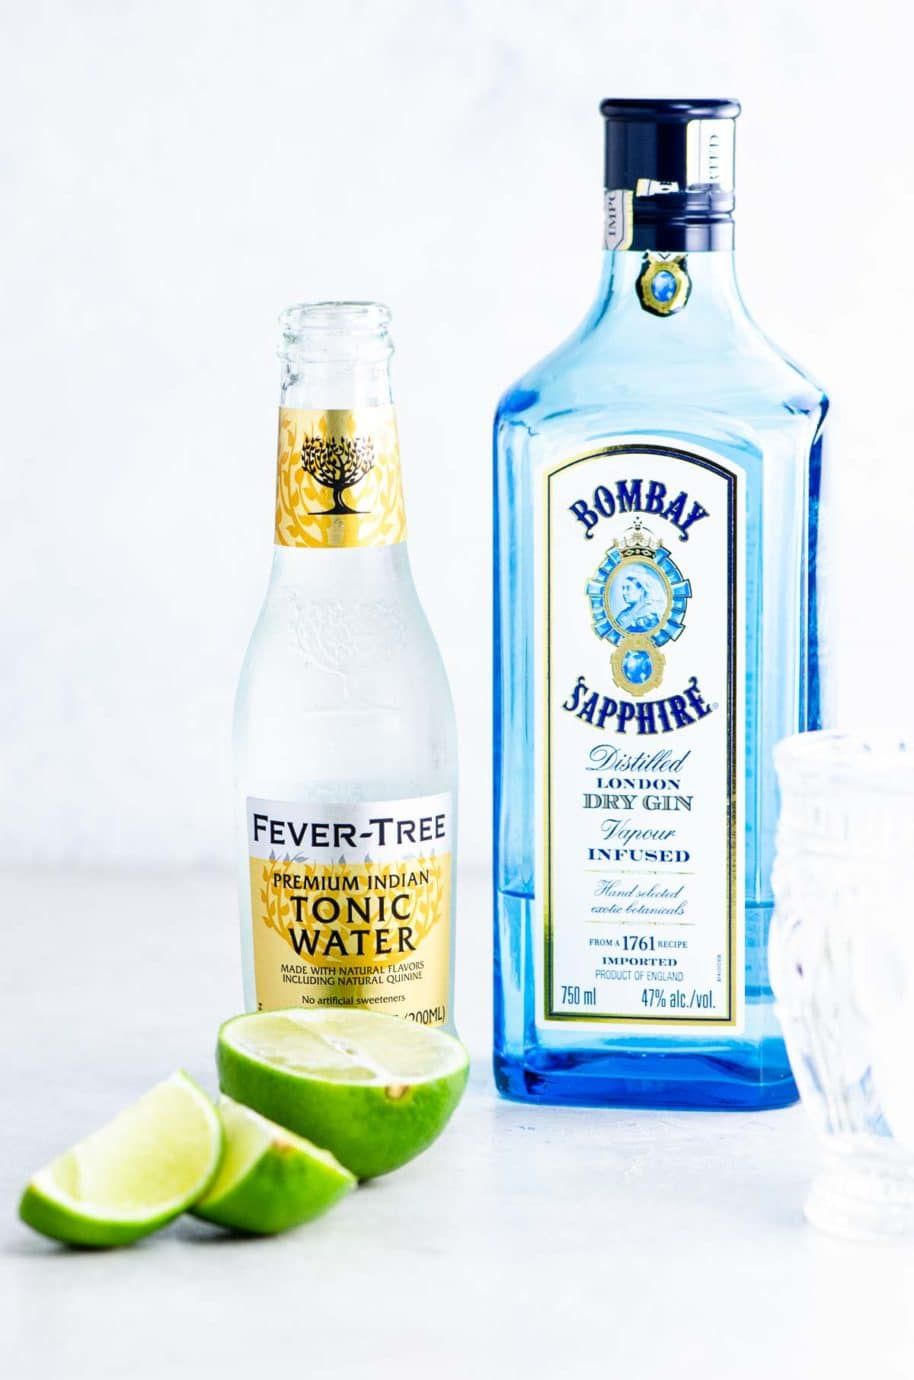 sapphire gin, fever tree tonic water, and lime